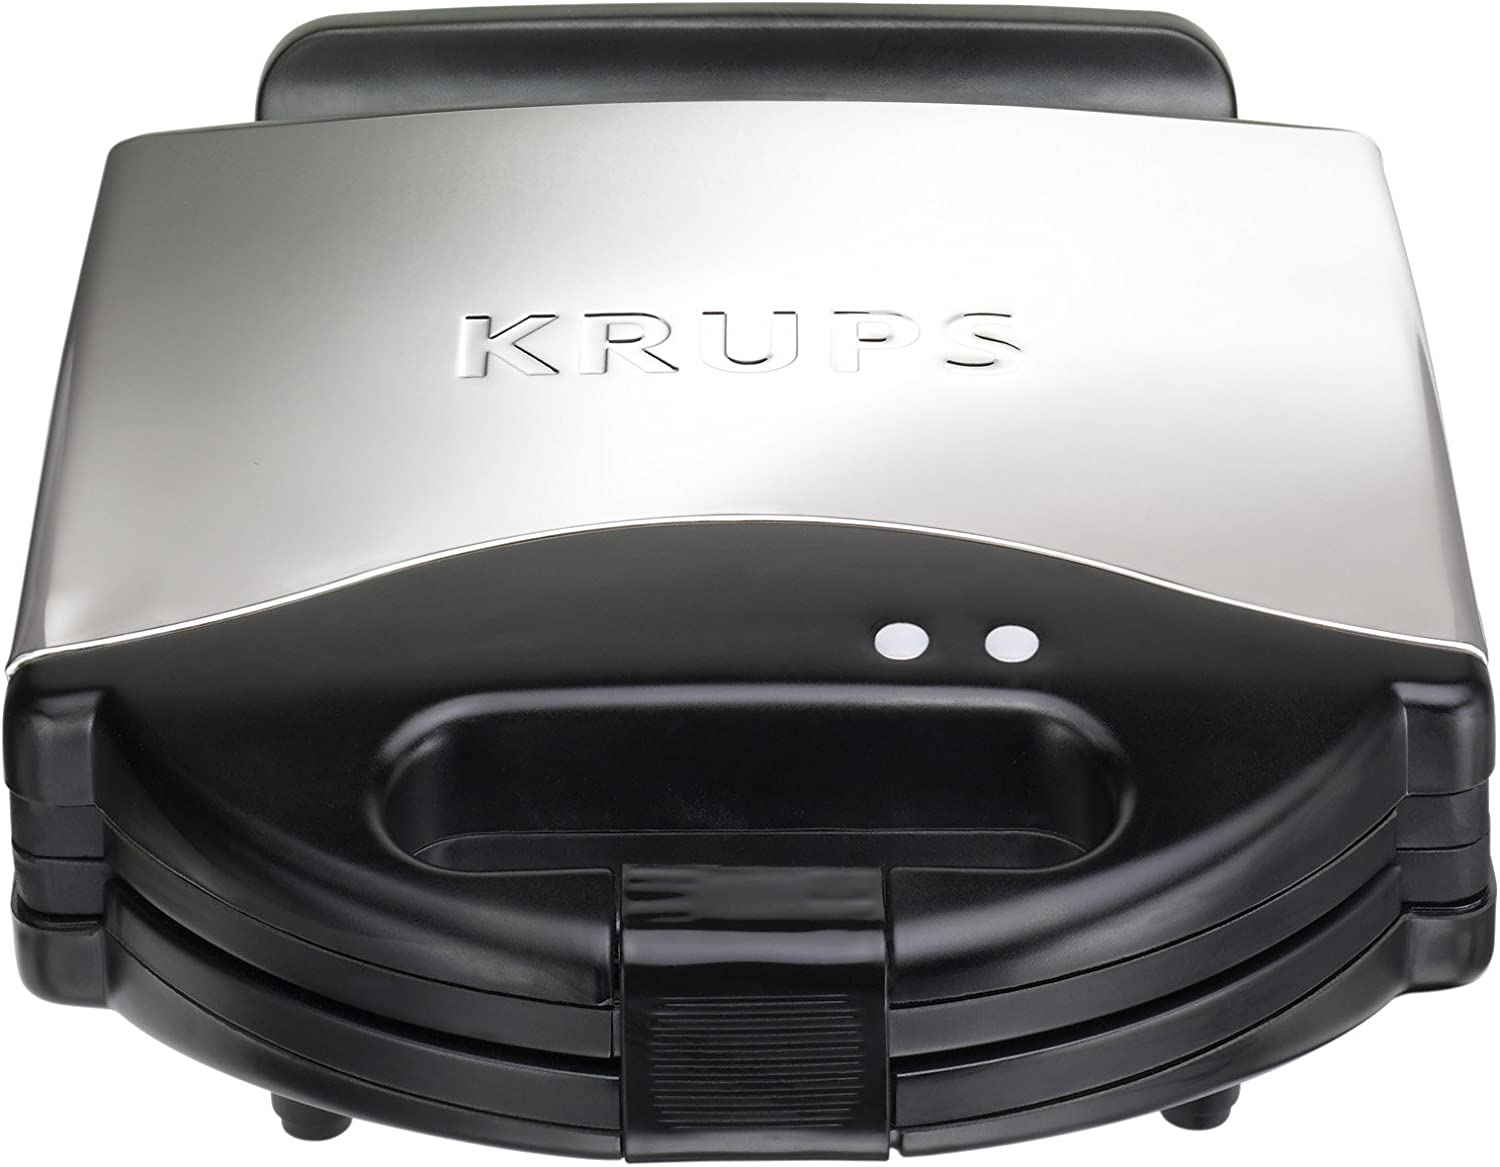 B00004SPEG KRUPS F654 Belgian Waffle Maker with Nonstick Plates LED Indicators and Stainless Steel Housing, 4-Slices, Silver 71geKquKPpL.SL1500_